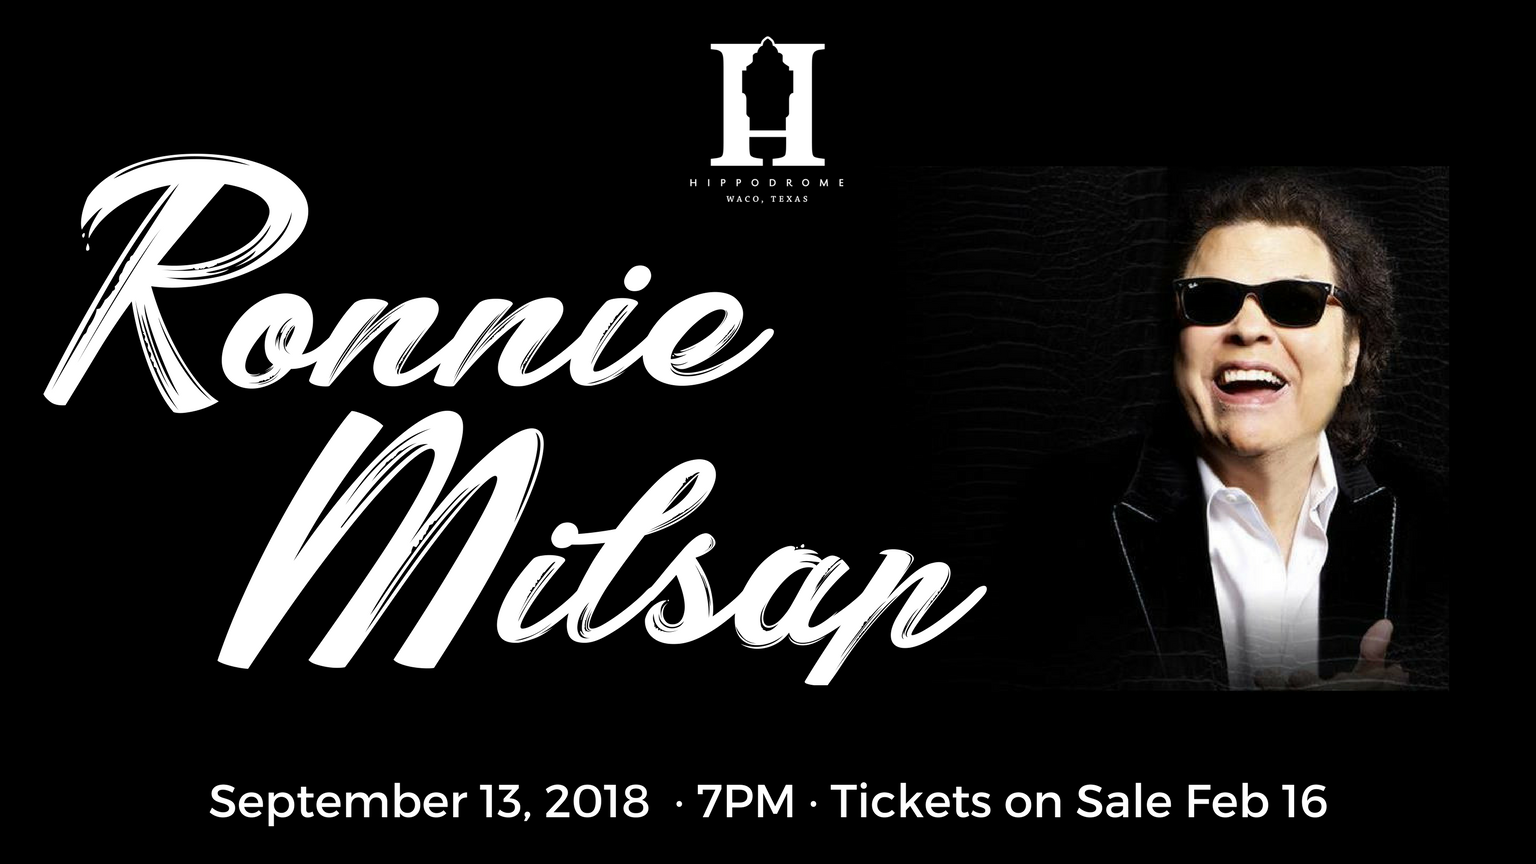 Tickets for Ronnie Milsap: Live at the Waco Hippodrome in Waco from ShowClix